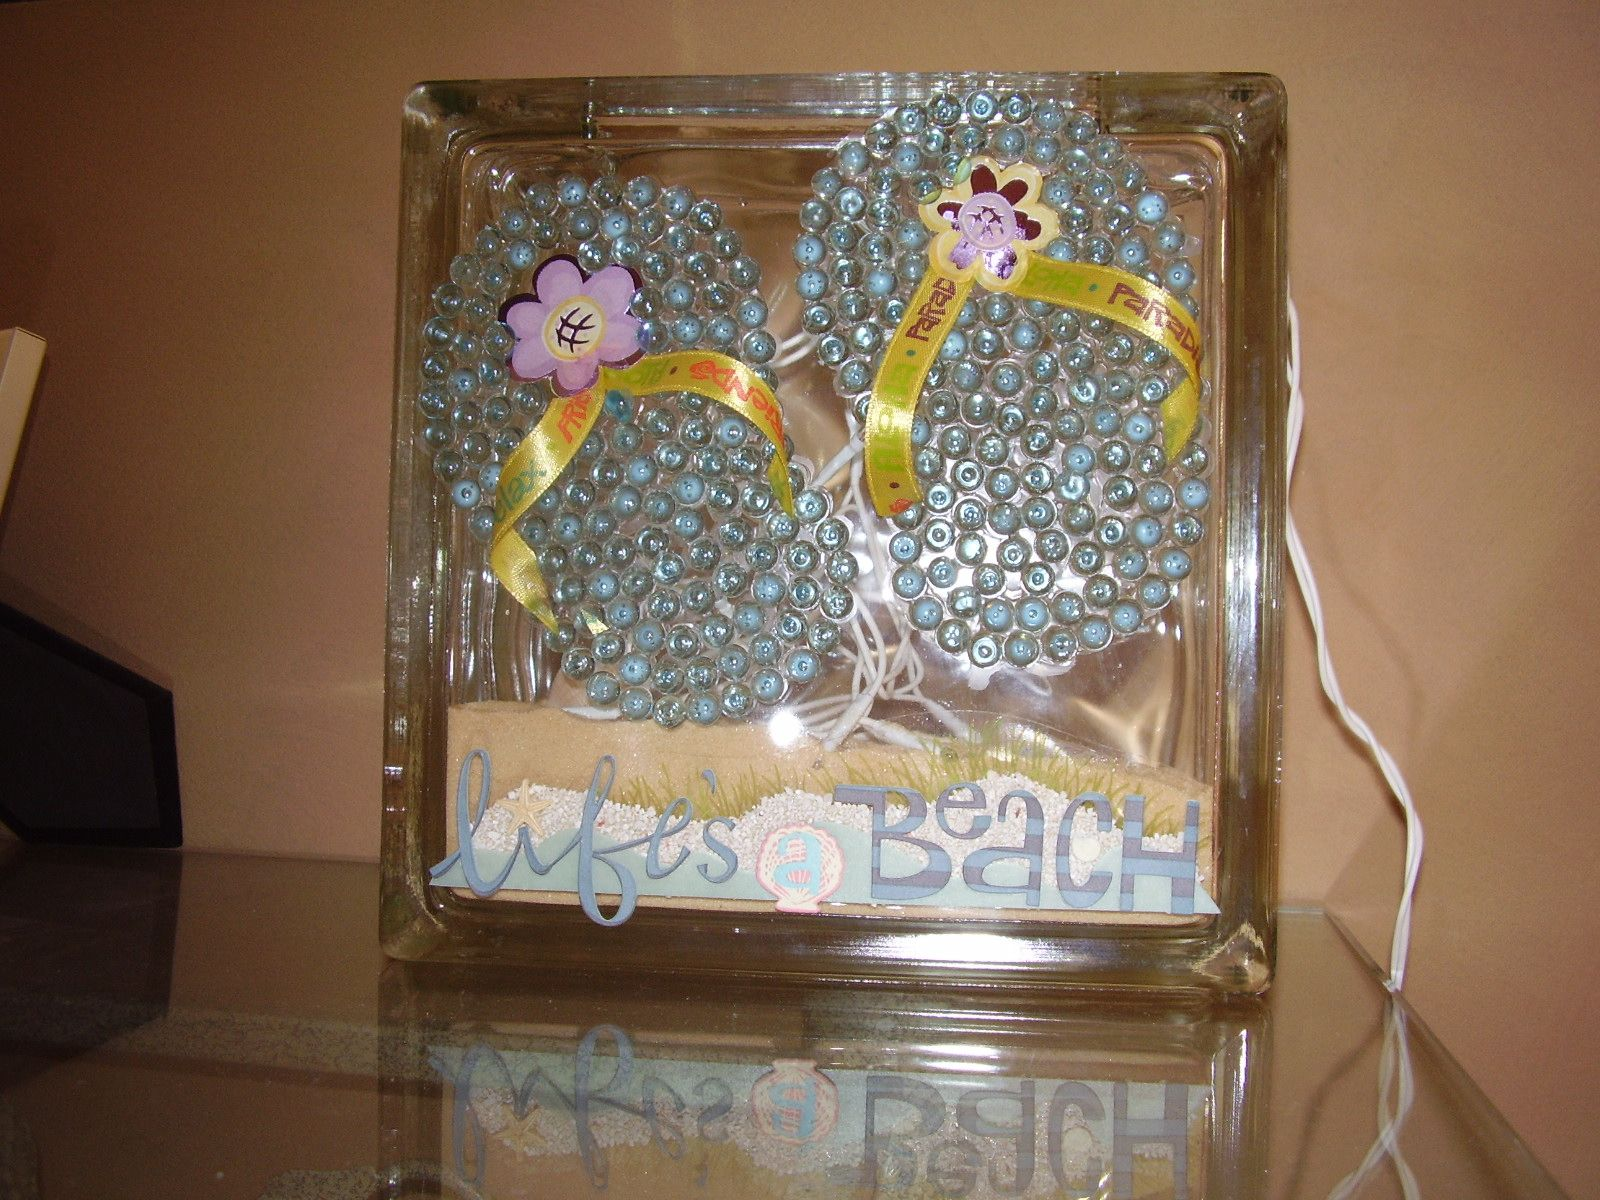 Glass block summer craft my craft projects pinterest glass blocks summer crafts and glass - Glass block decoration ideas ...